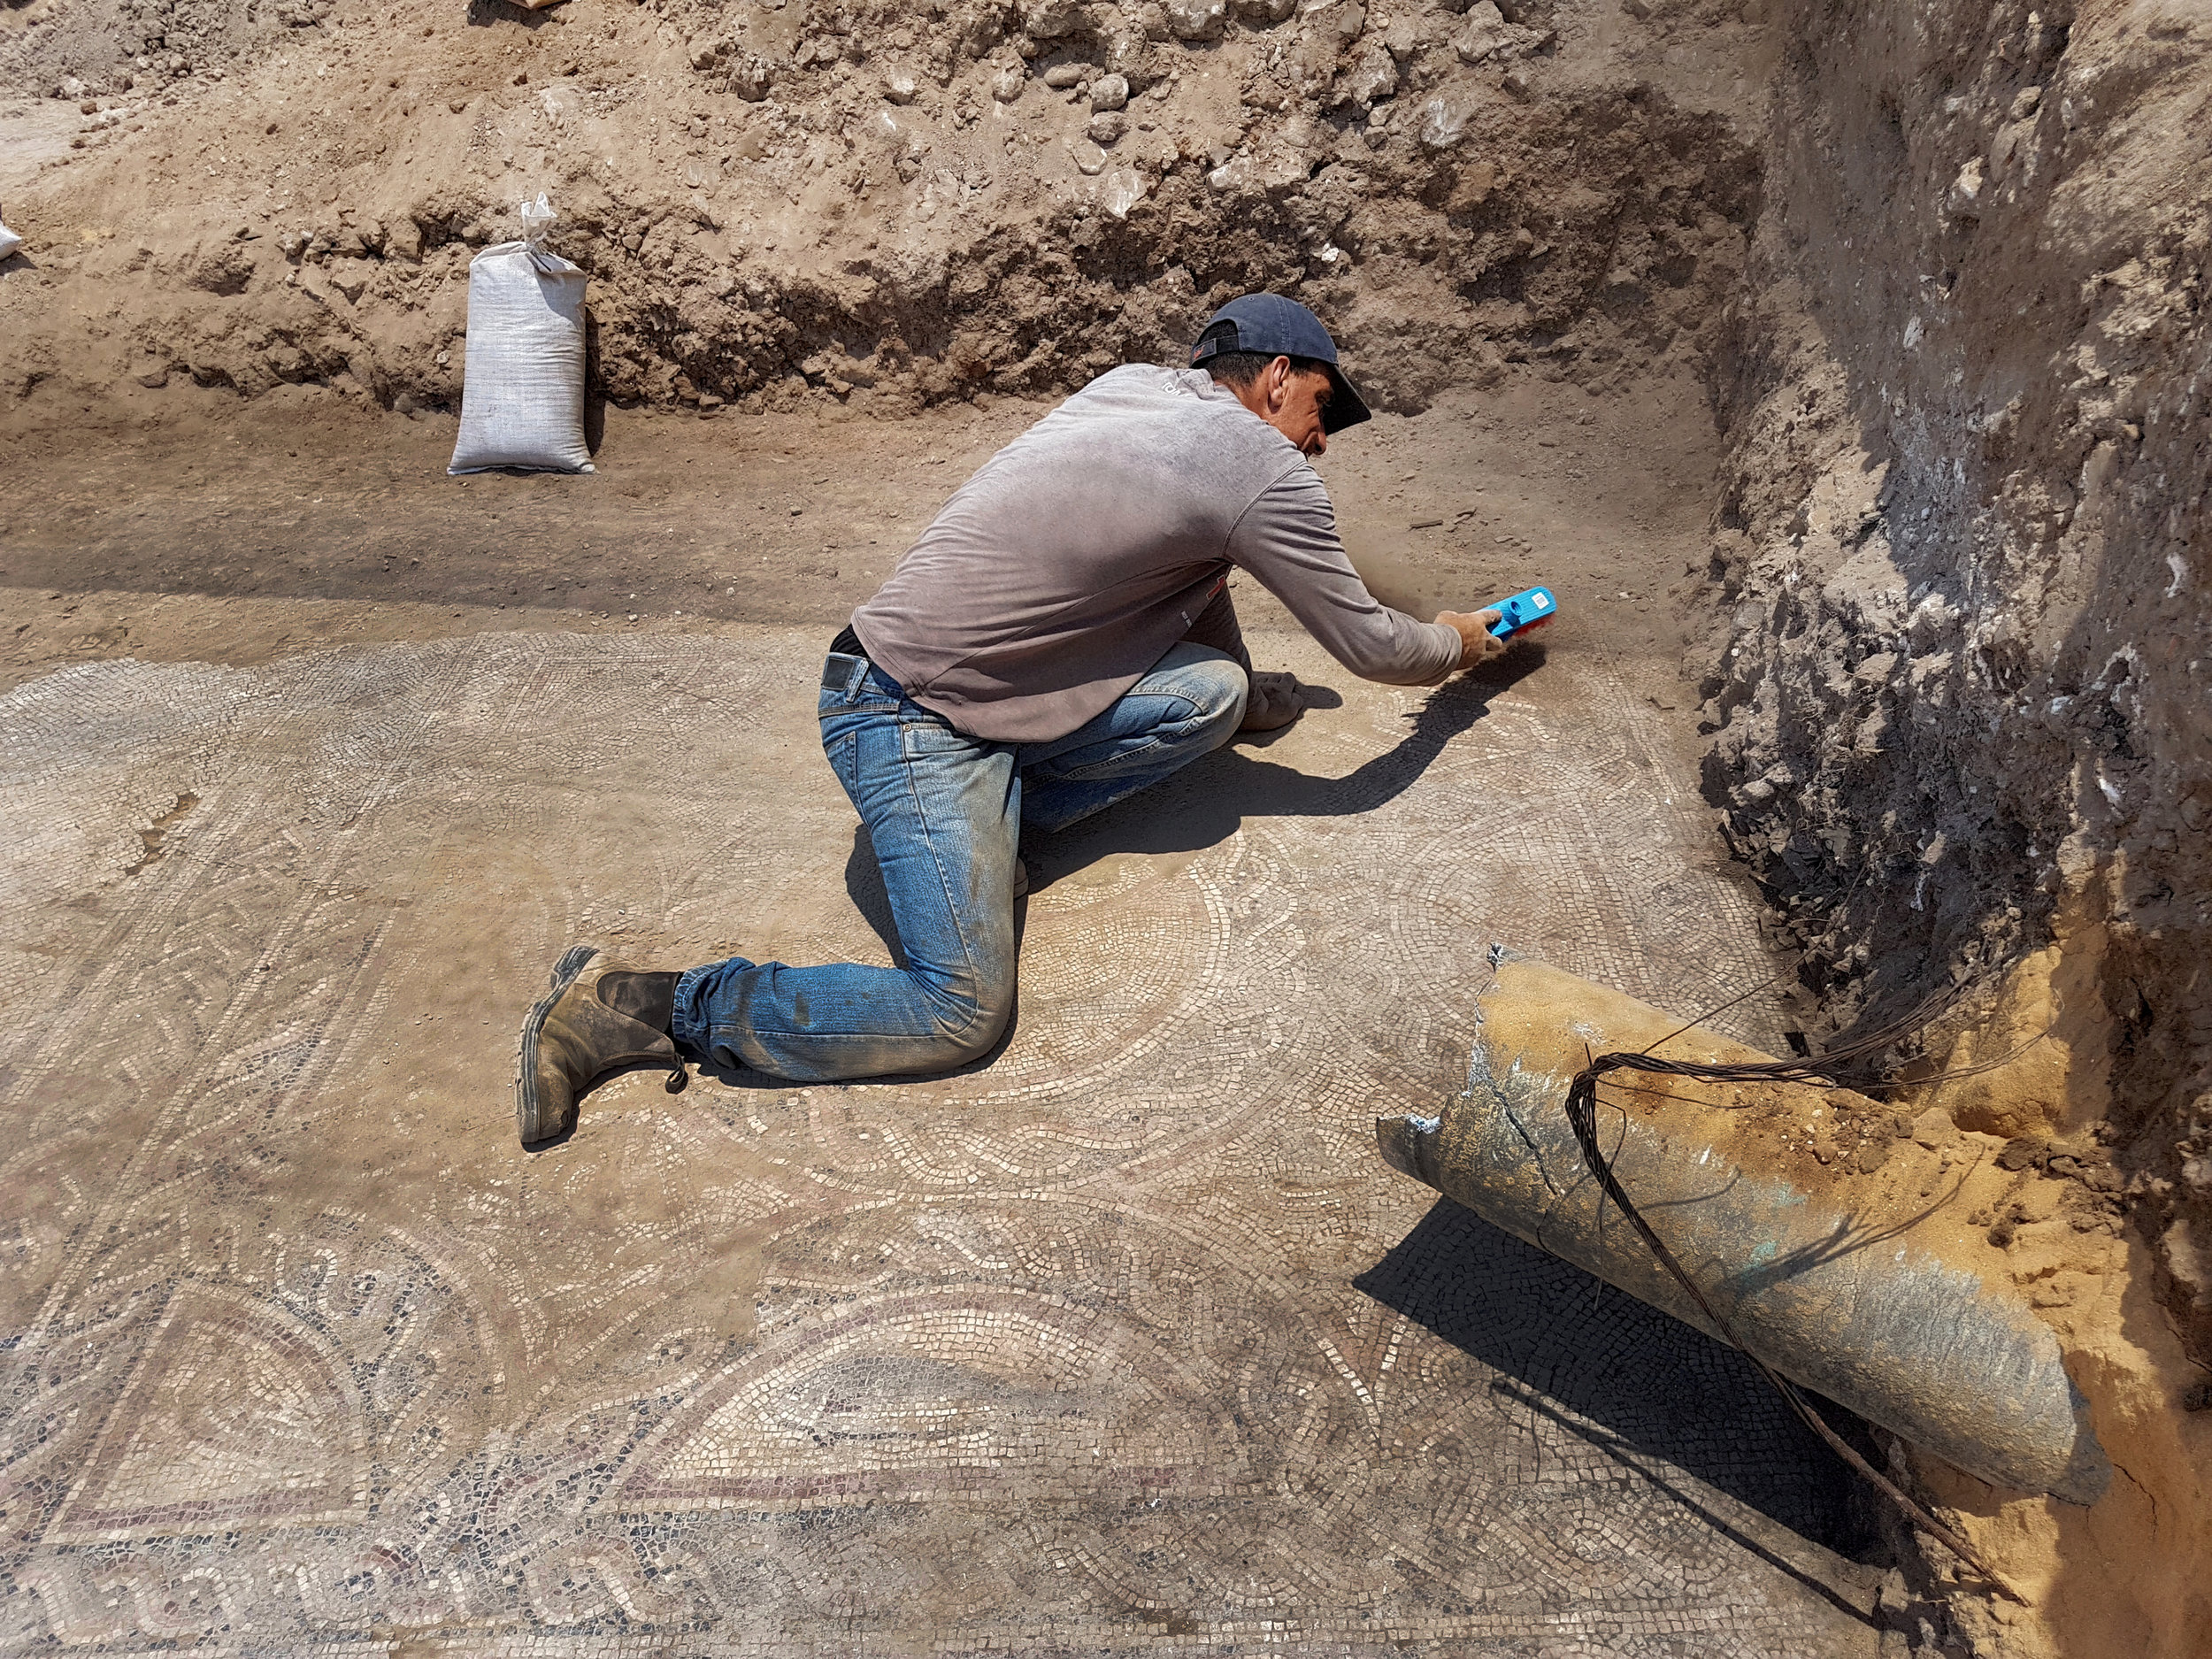 Uncovering the mosaic.  Photos: Amir Gorzalczany